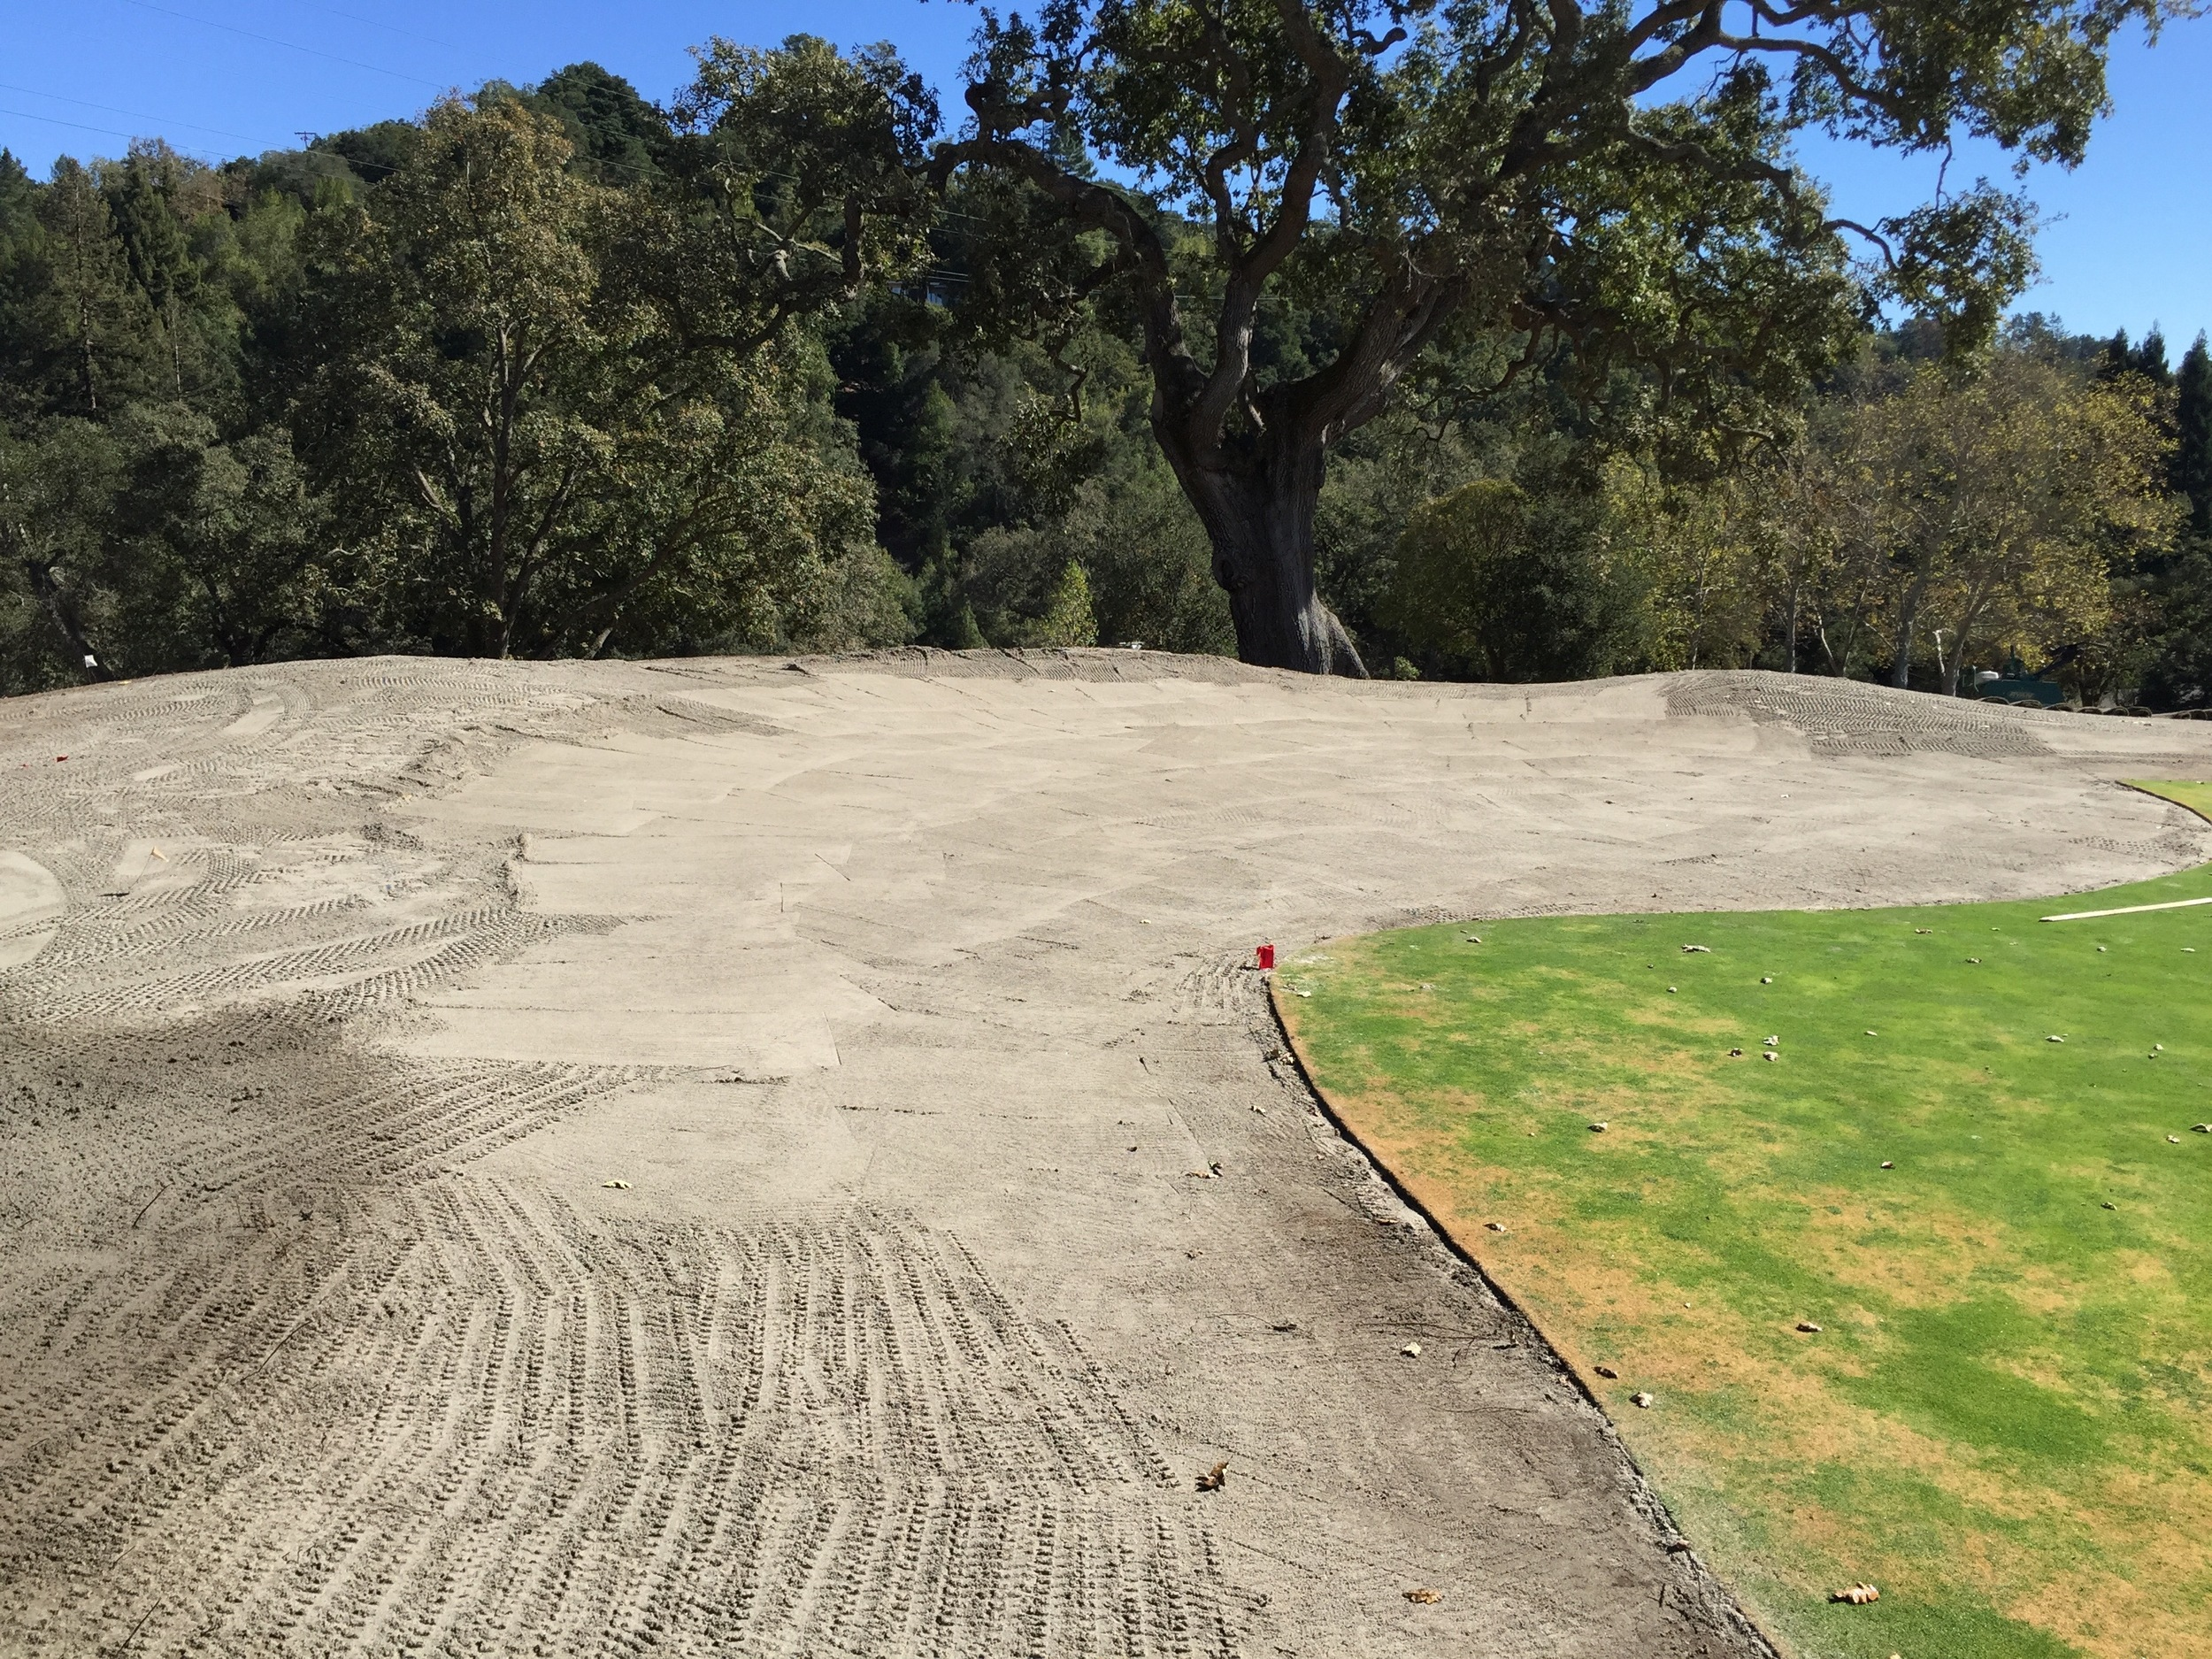 hochstein-design-orinda-cc-hole-2-finish-1.jpg